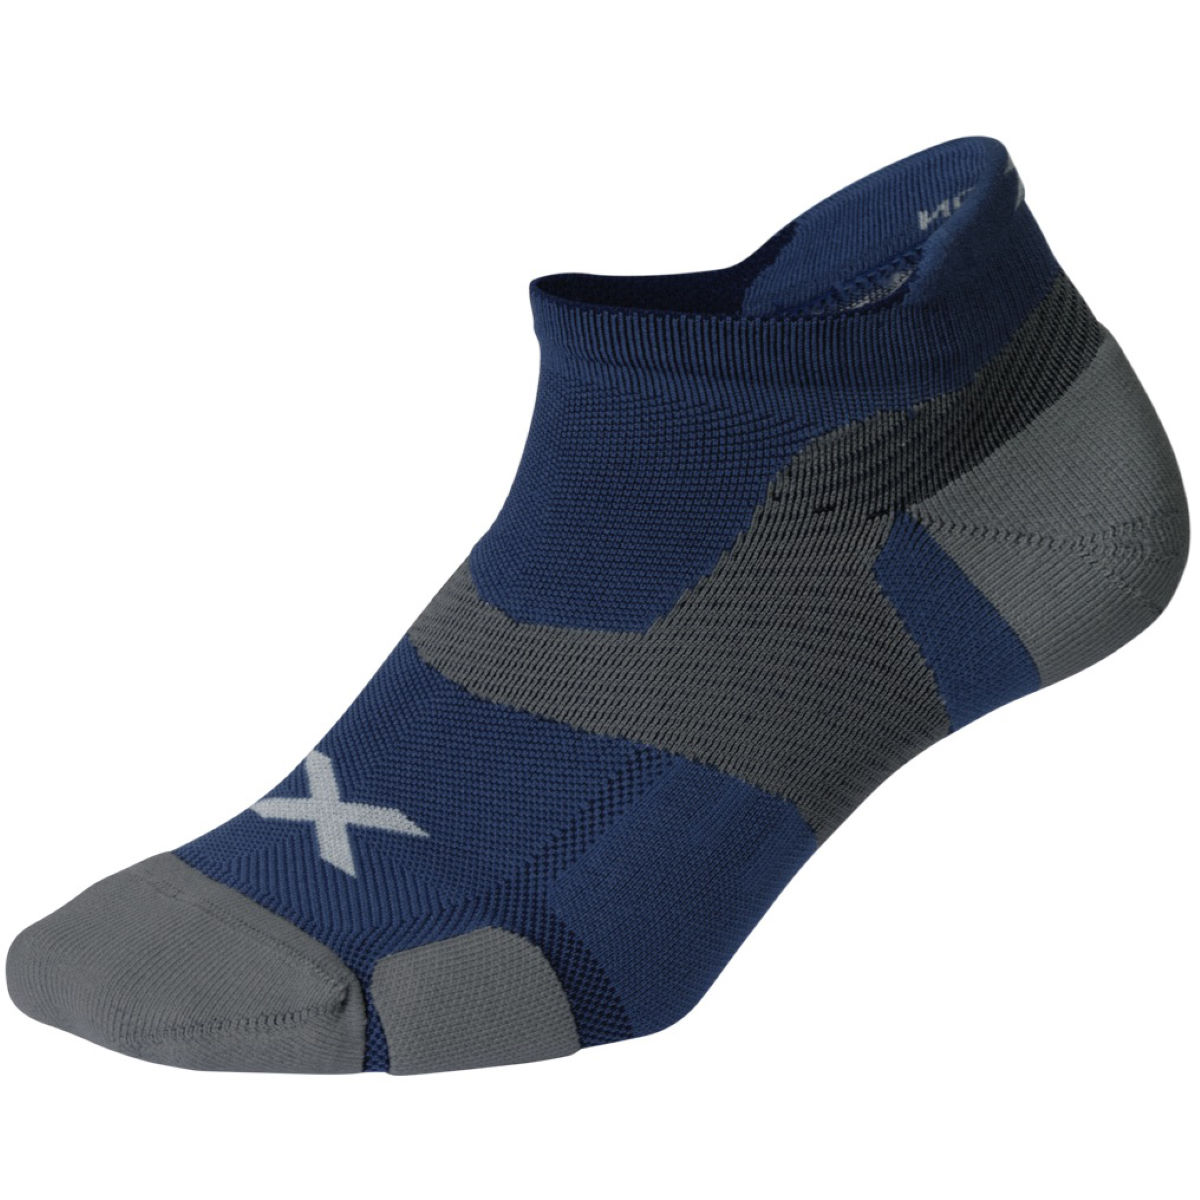 Chaussettes 2XU Vectr Cushion No Show - S Blue Steel/Grey